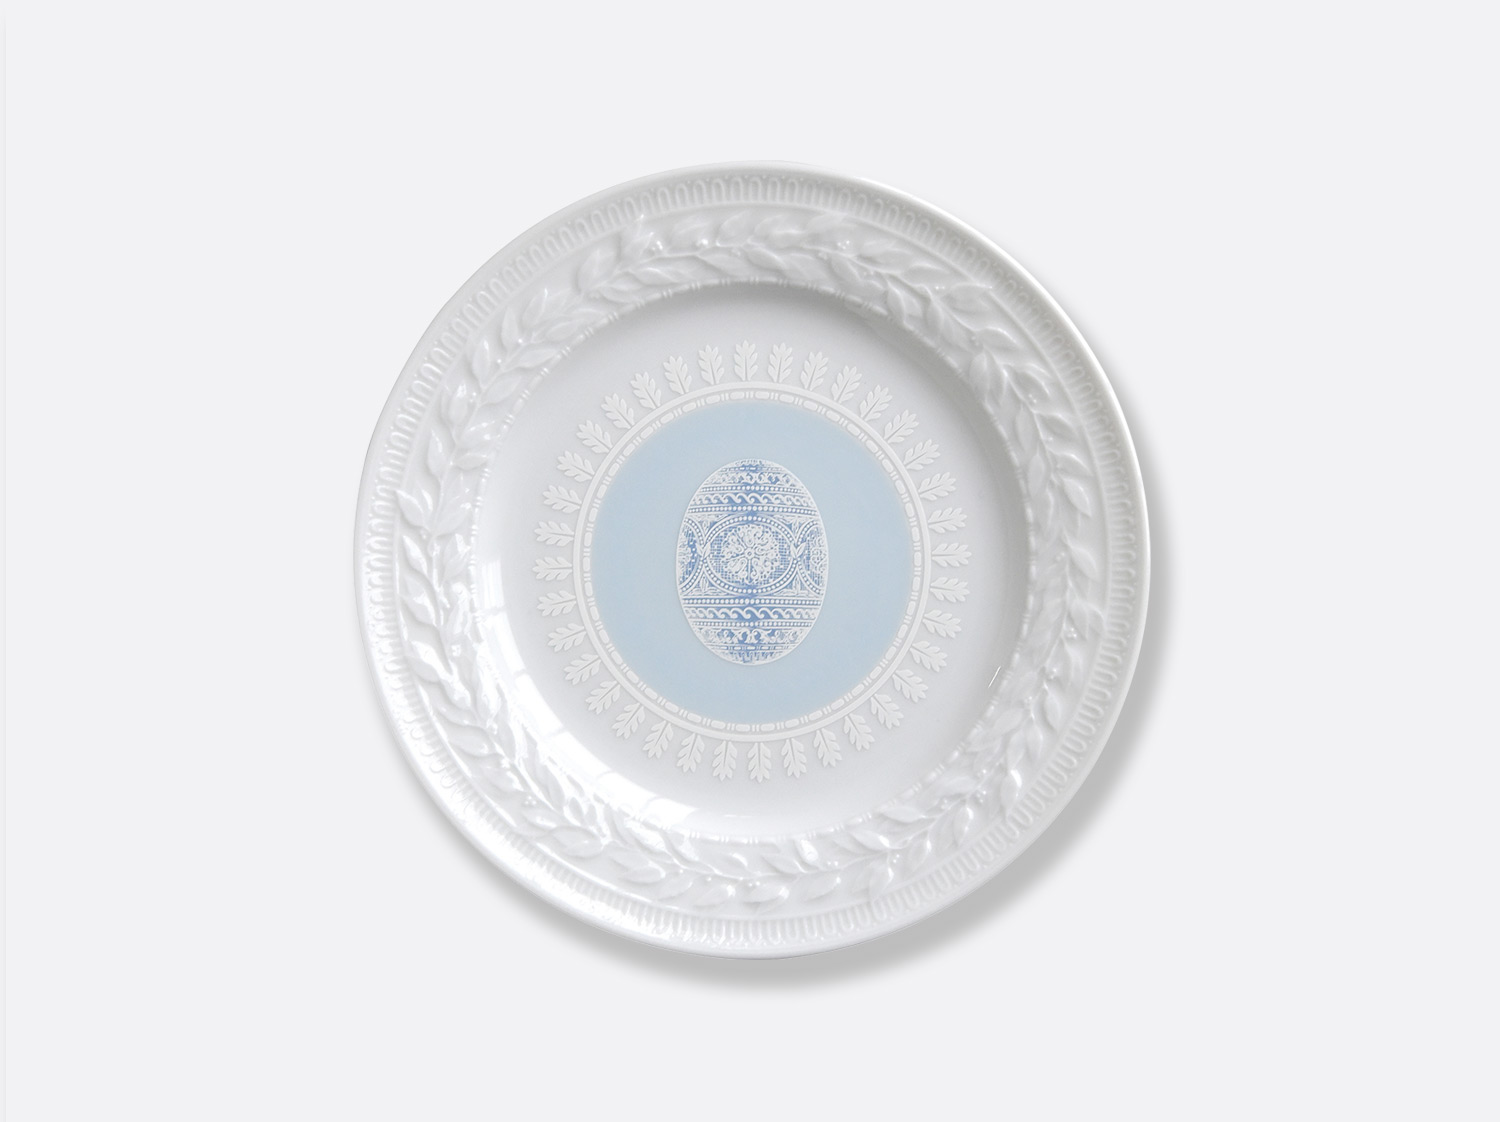 China Blue salad plate 8.5'' of the collection Louvre pâques bleu | Bernardaud